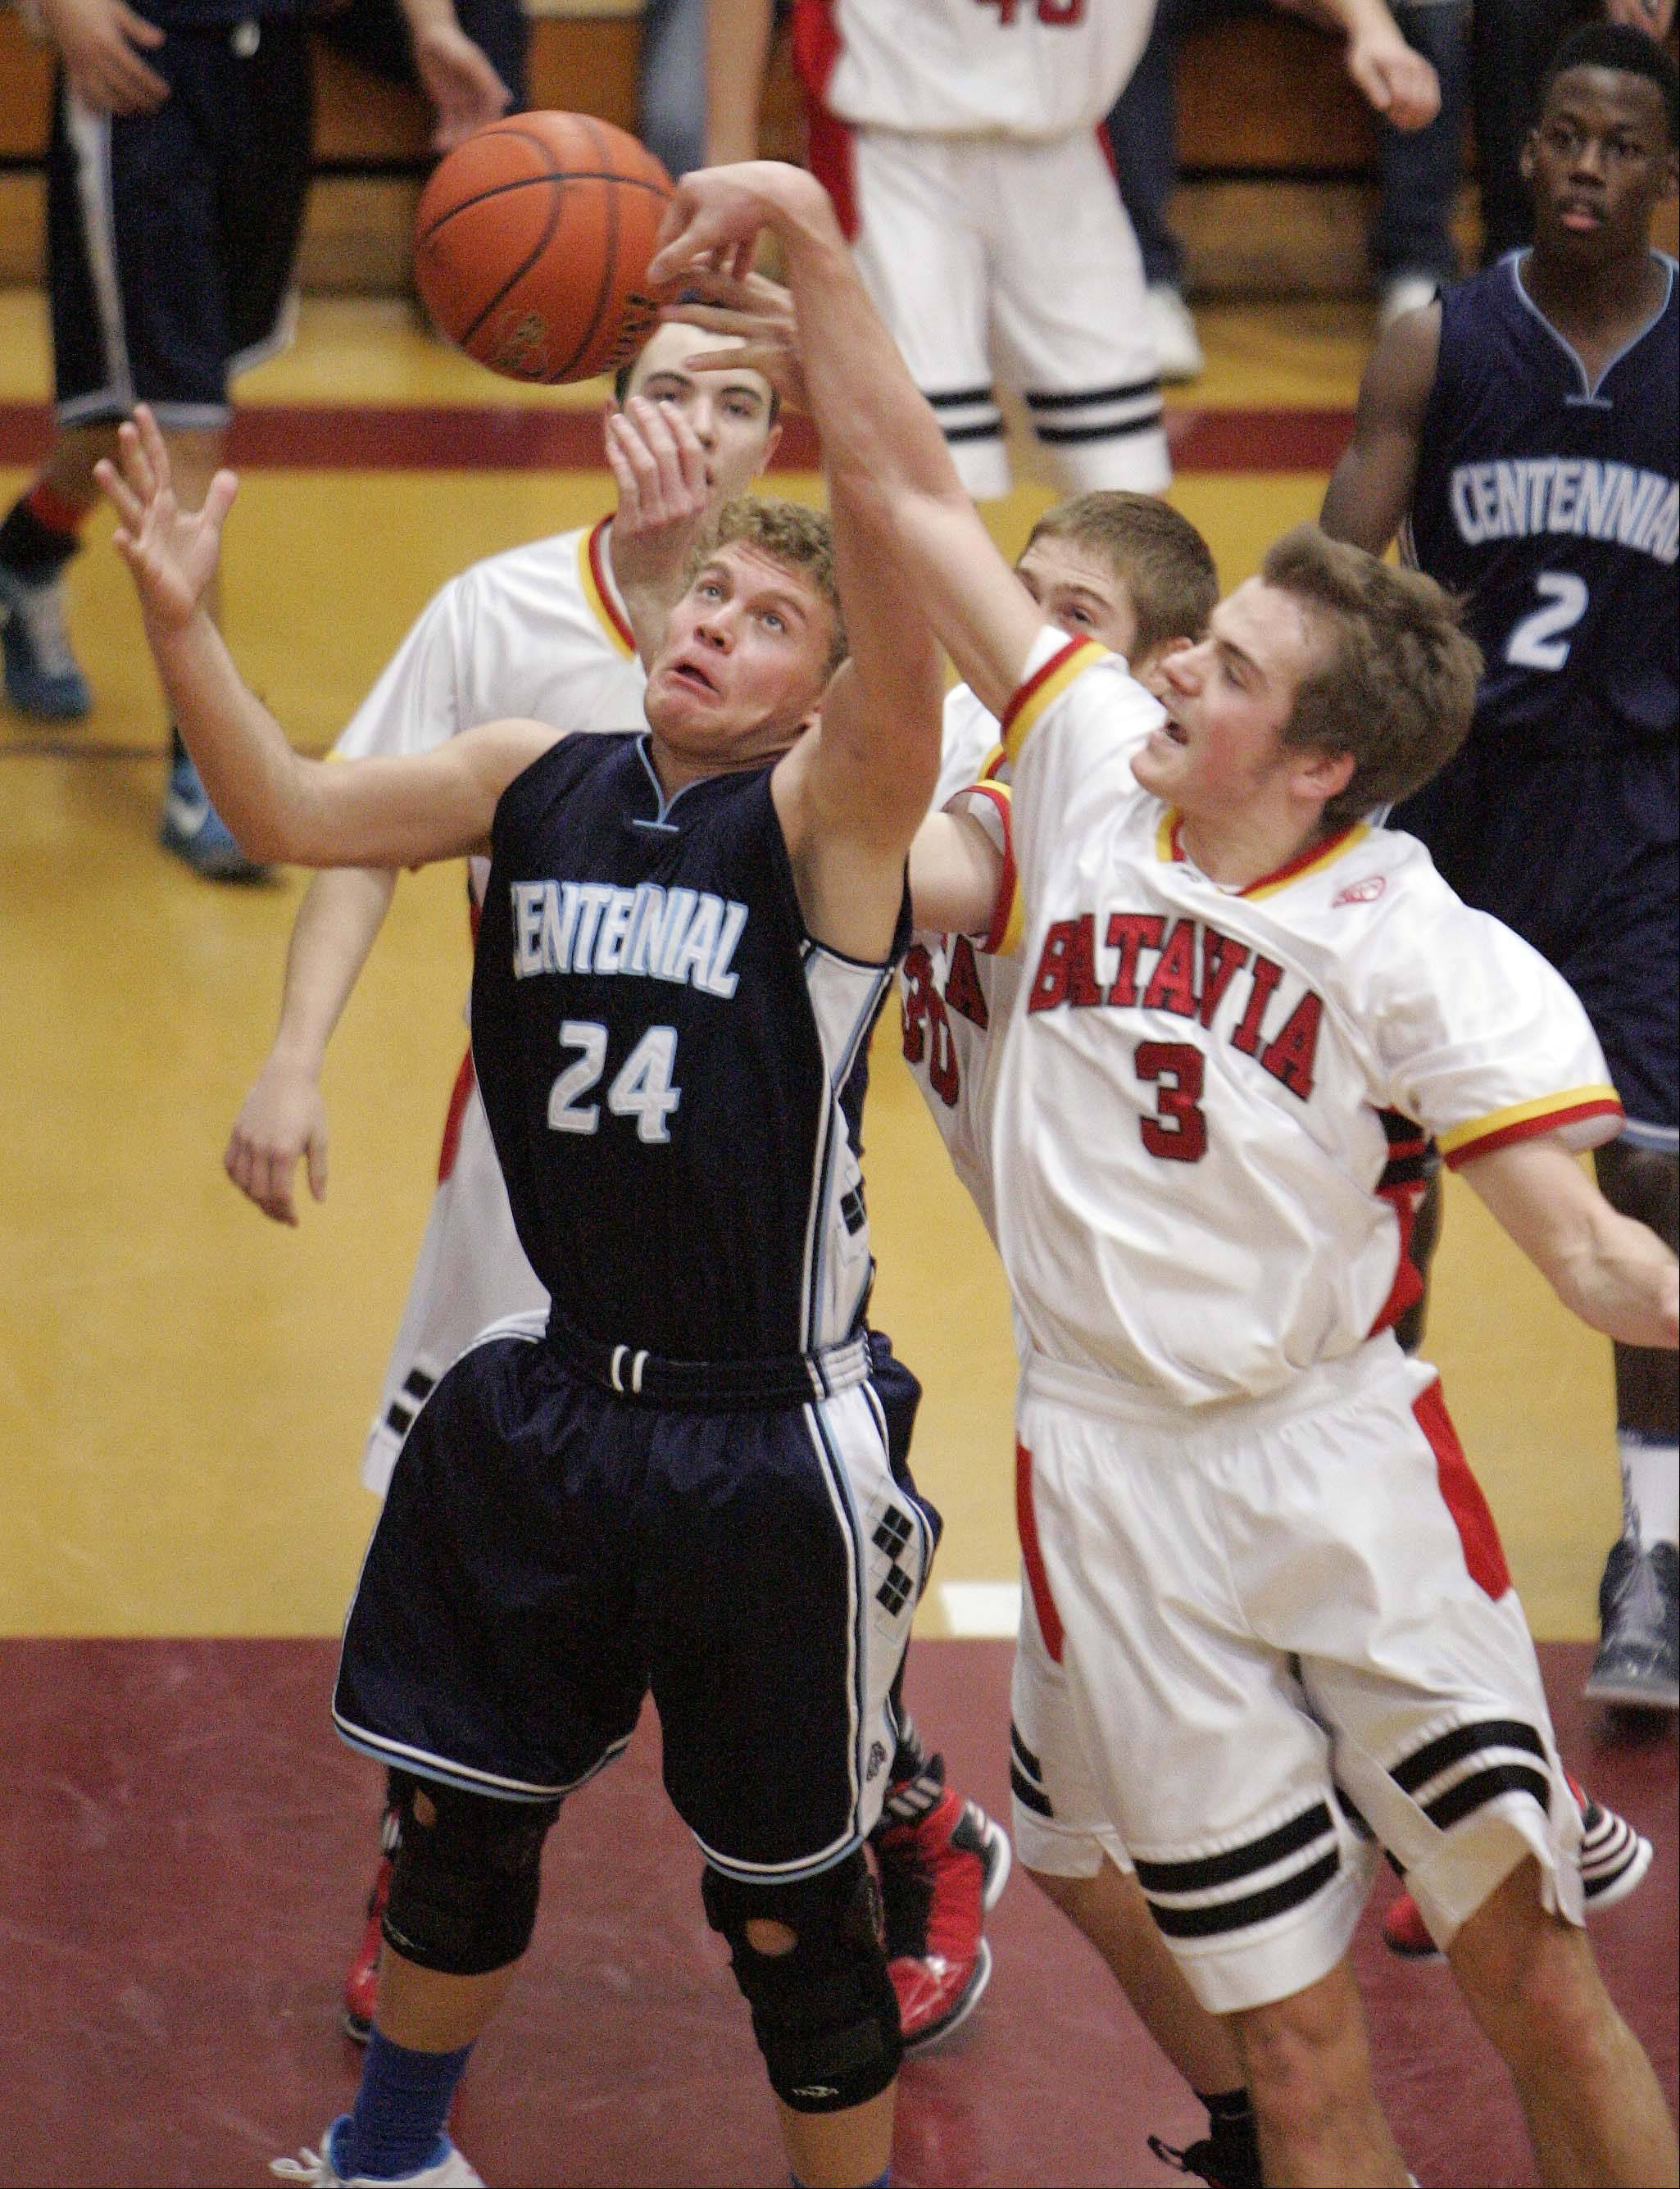 Brian Hill/bhill@dailyherald.comBatavia guard Jake Pollack (3) knocks a rebound from the hands of Las Vegas Centennial's Austin Turley, 24, during the third place basketball game of the 38th Annual Elgin Boys Holiday Basketball Tournament Saturday, December 29, 2012 in Elgin.